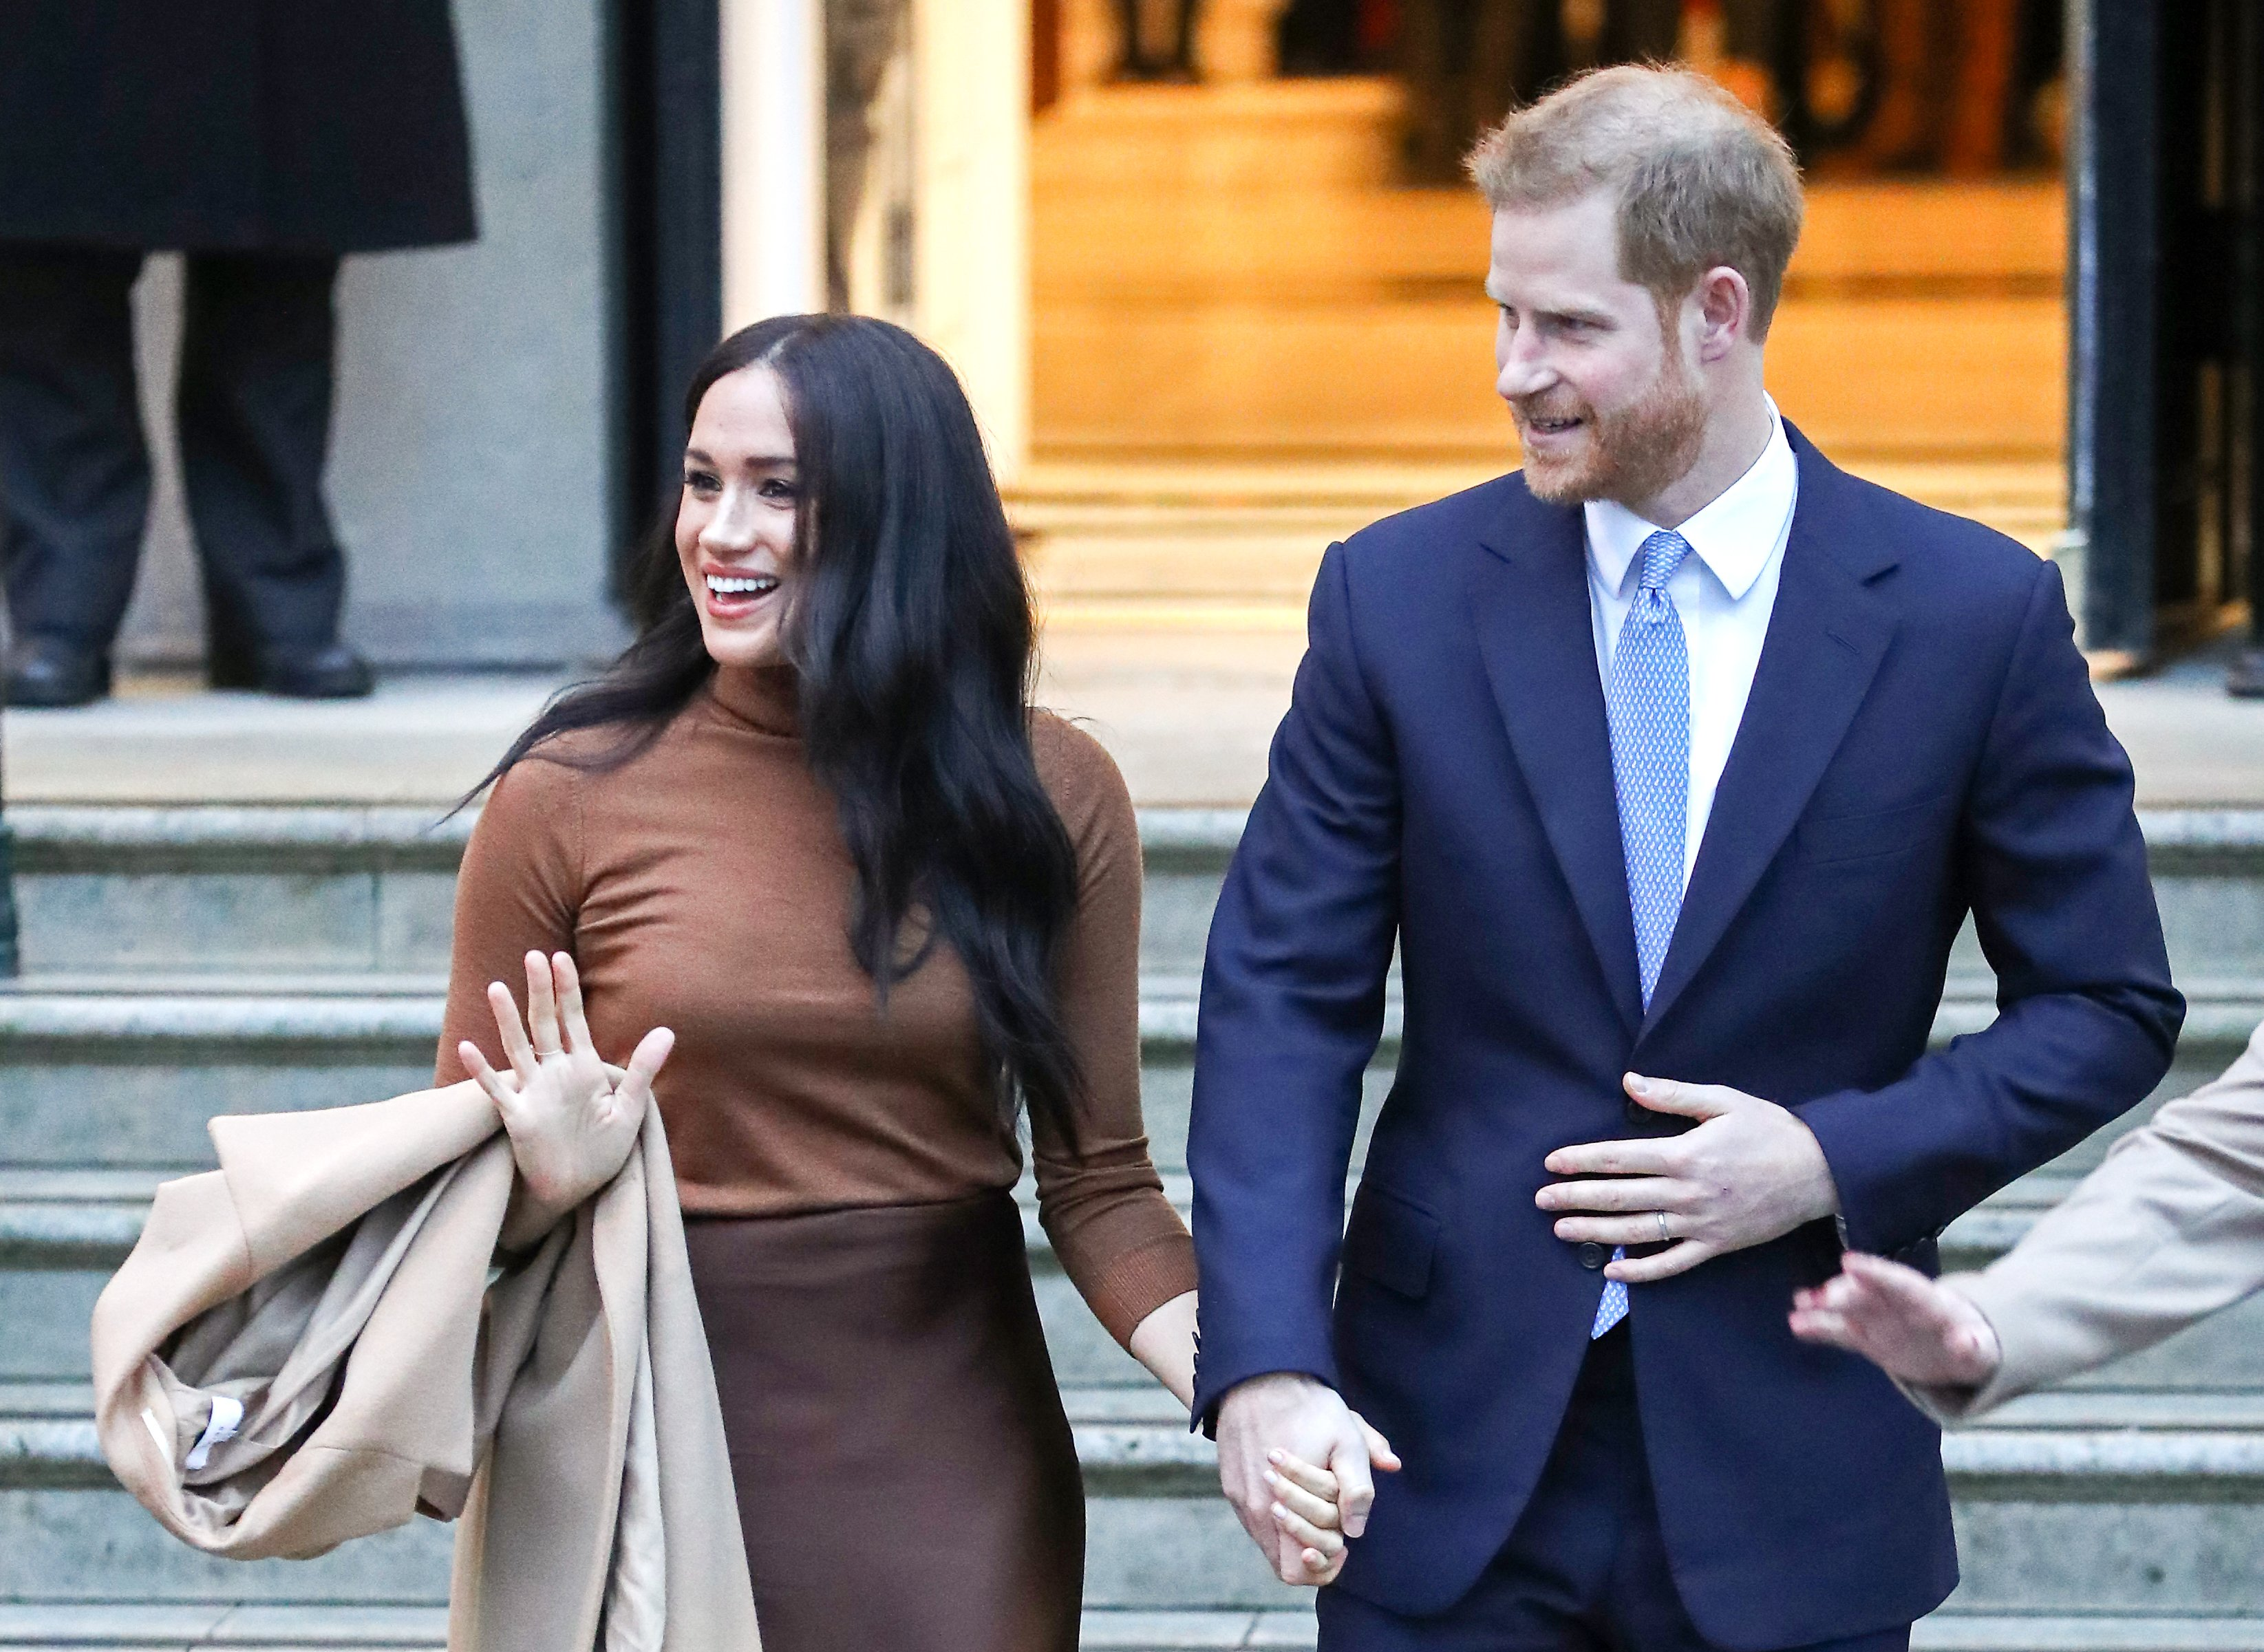 Meghan Markle and Prince Harry leave the Canada House in London, England on January 7, 2020 | Photo: Getty Images